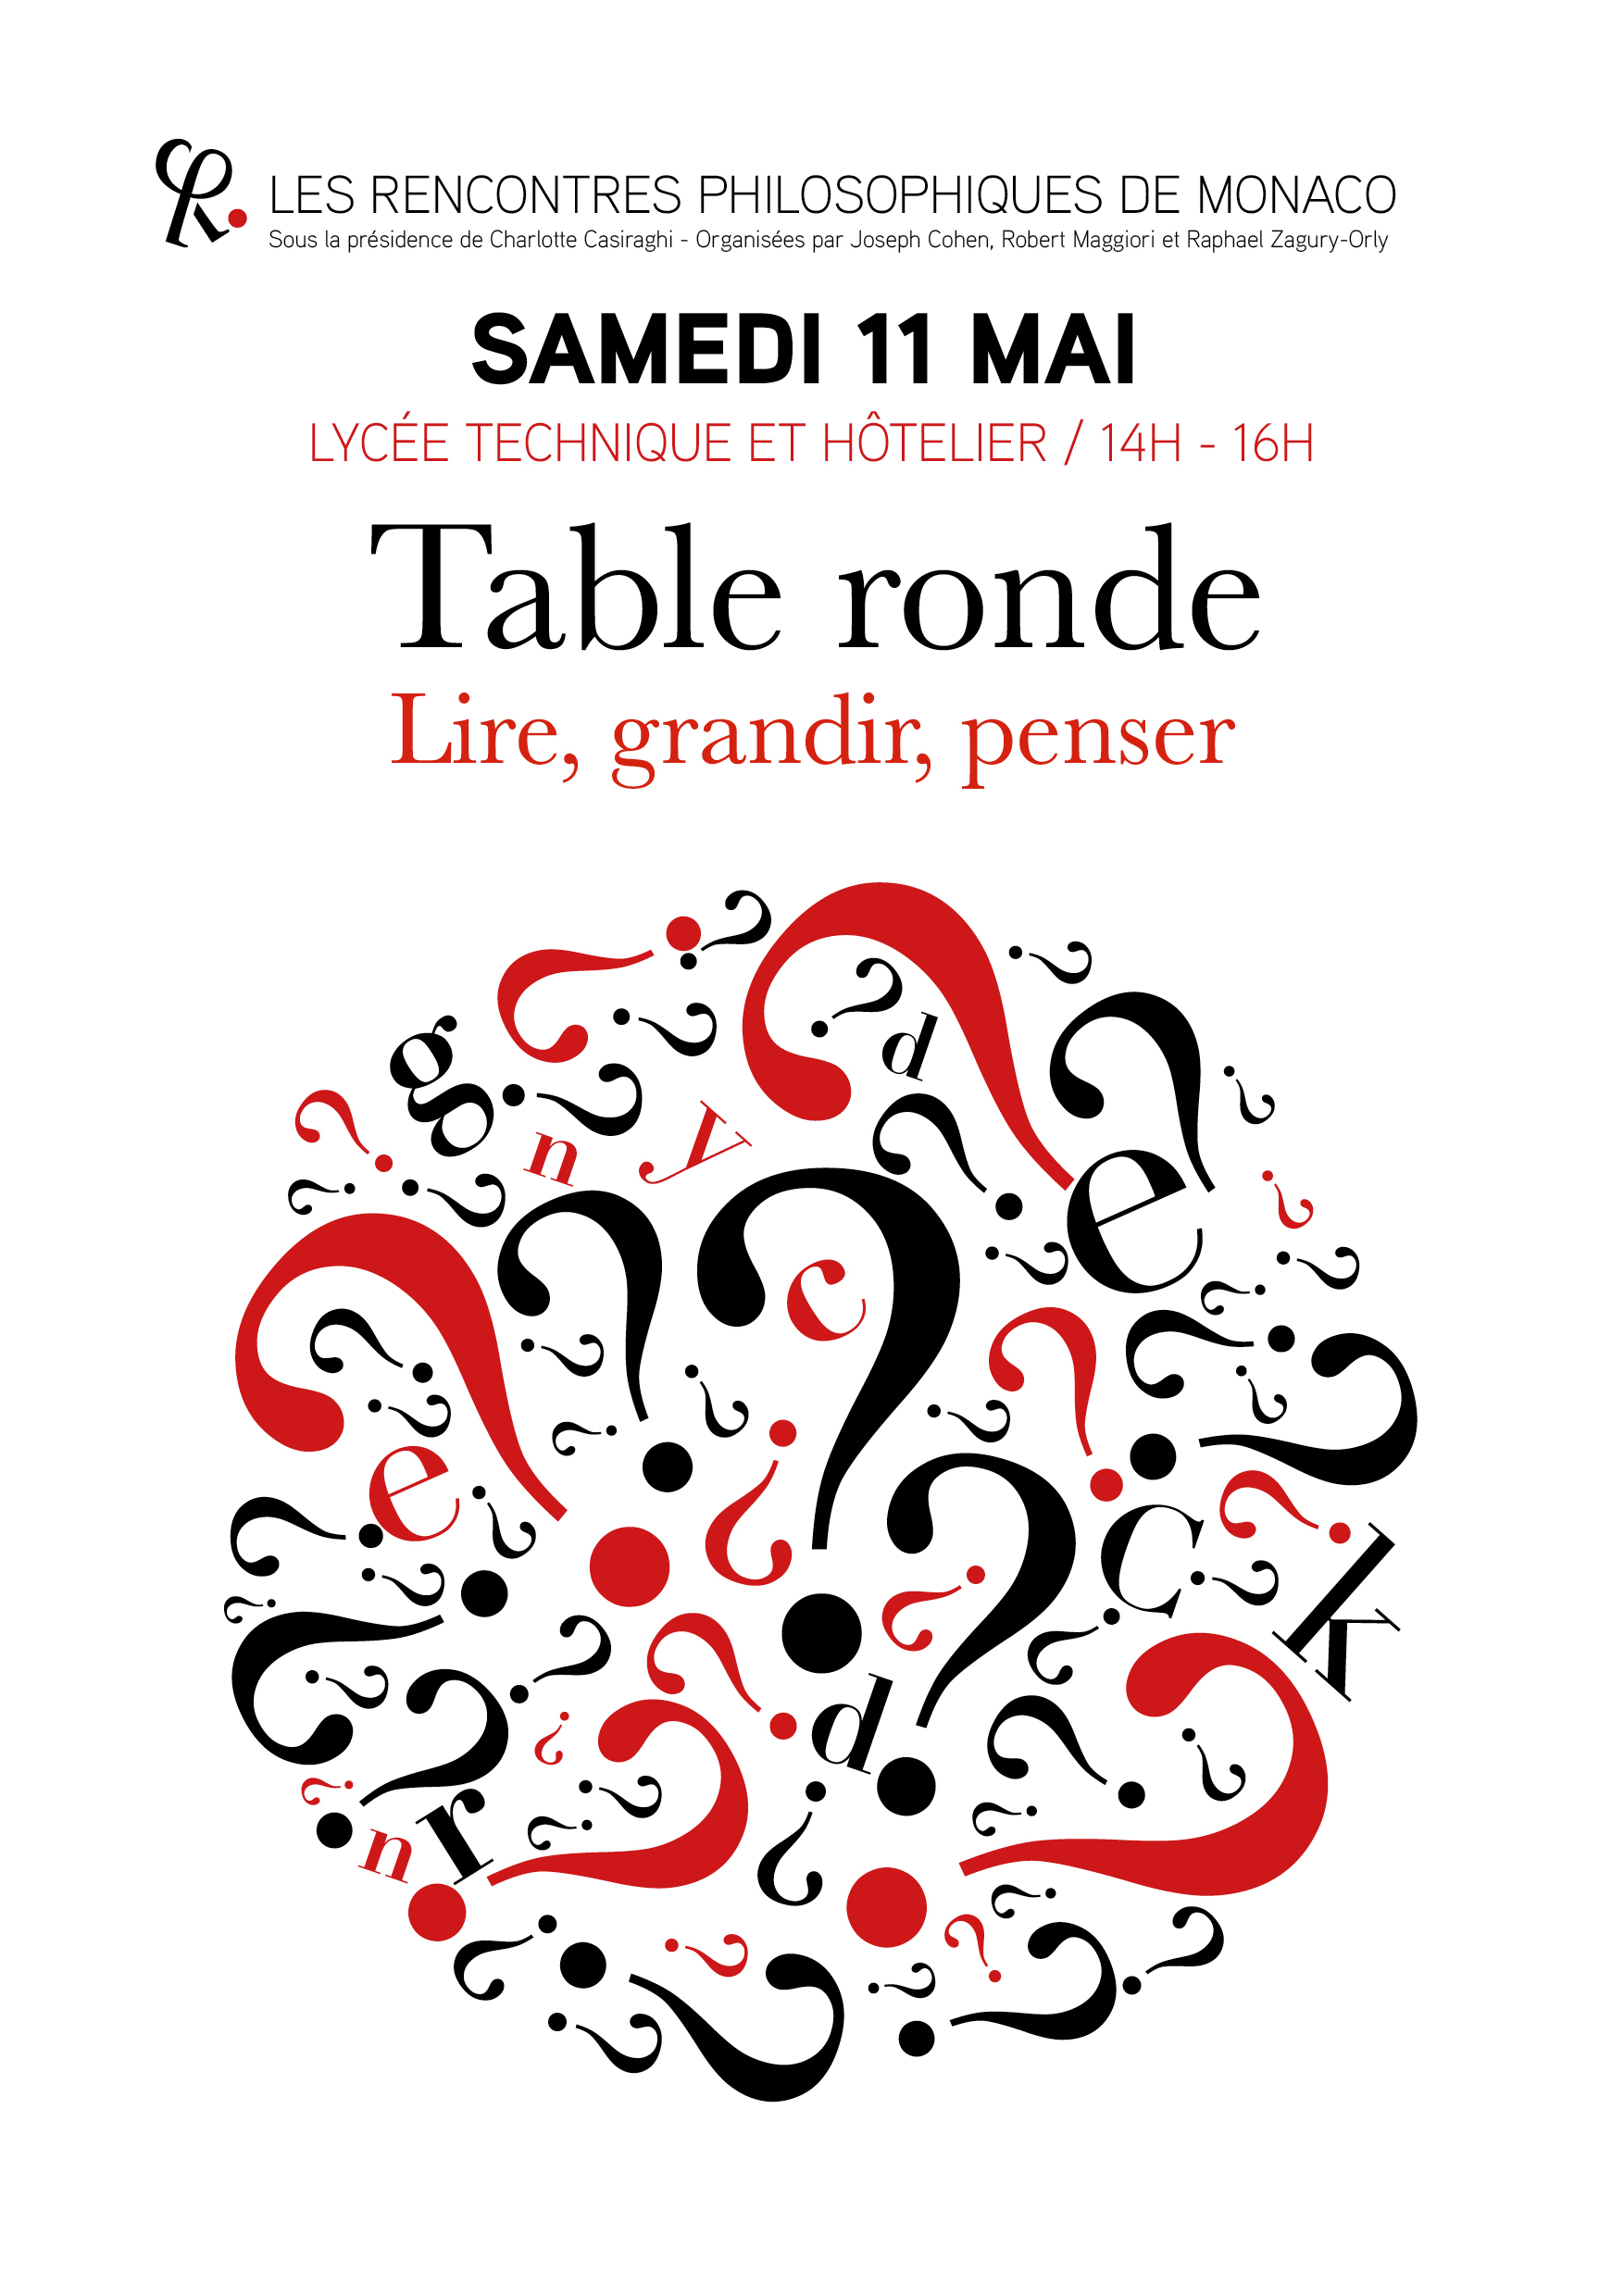 5430, 5430, flyer Table 2, flyer-table-2.jpg, 919761, http://philomonaco.com/wp-content/uploads/2019/04/flyer-table-2.jpg, http://philomonaco.com/atelier/exposition-lhumain/flyer-table-2/, , 2, , , flyer-table-2, inherit, 5423, 2019-04-01 14:14:21, 2019-04-01 14:14:21, 0, image/jpeg, image, jpeg, http://philomonaco.com/wp-includes/images/media/default.png, 1754, 2480, Array